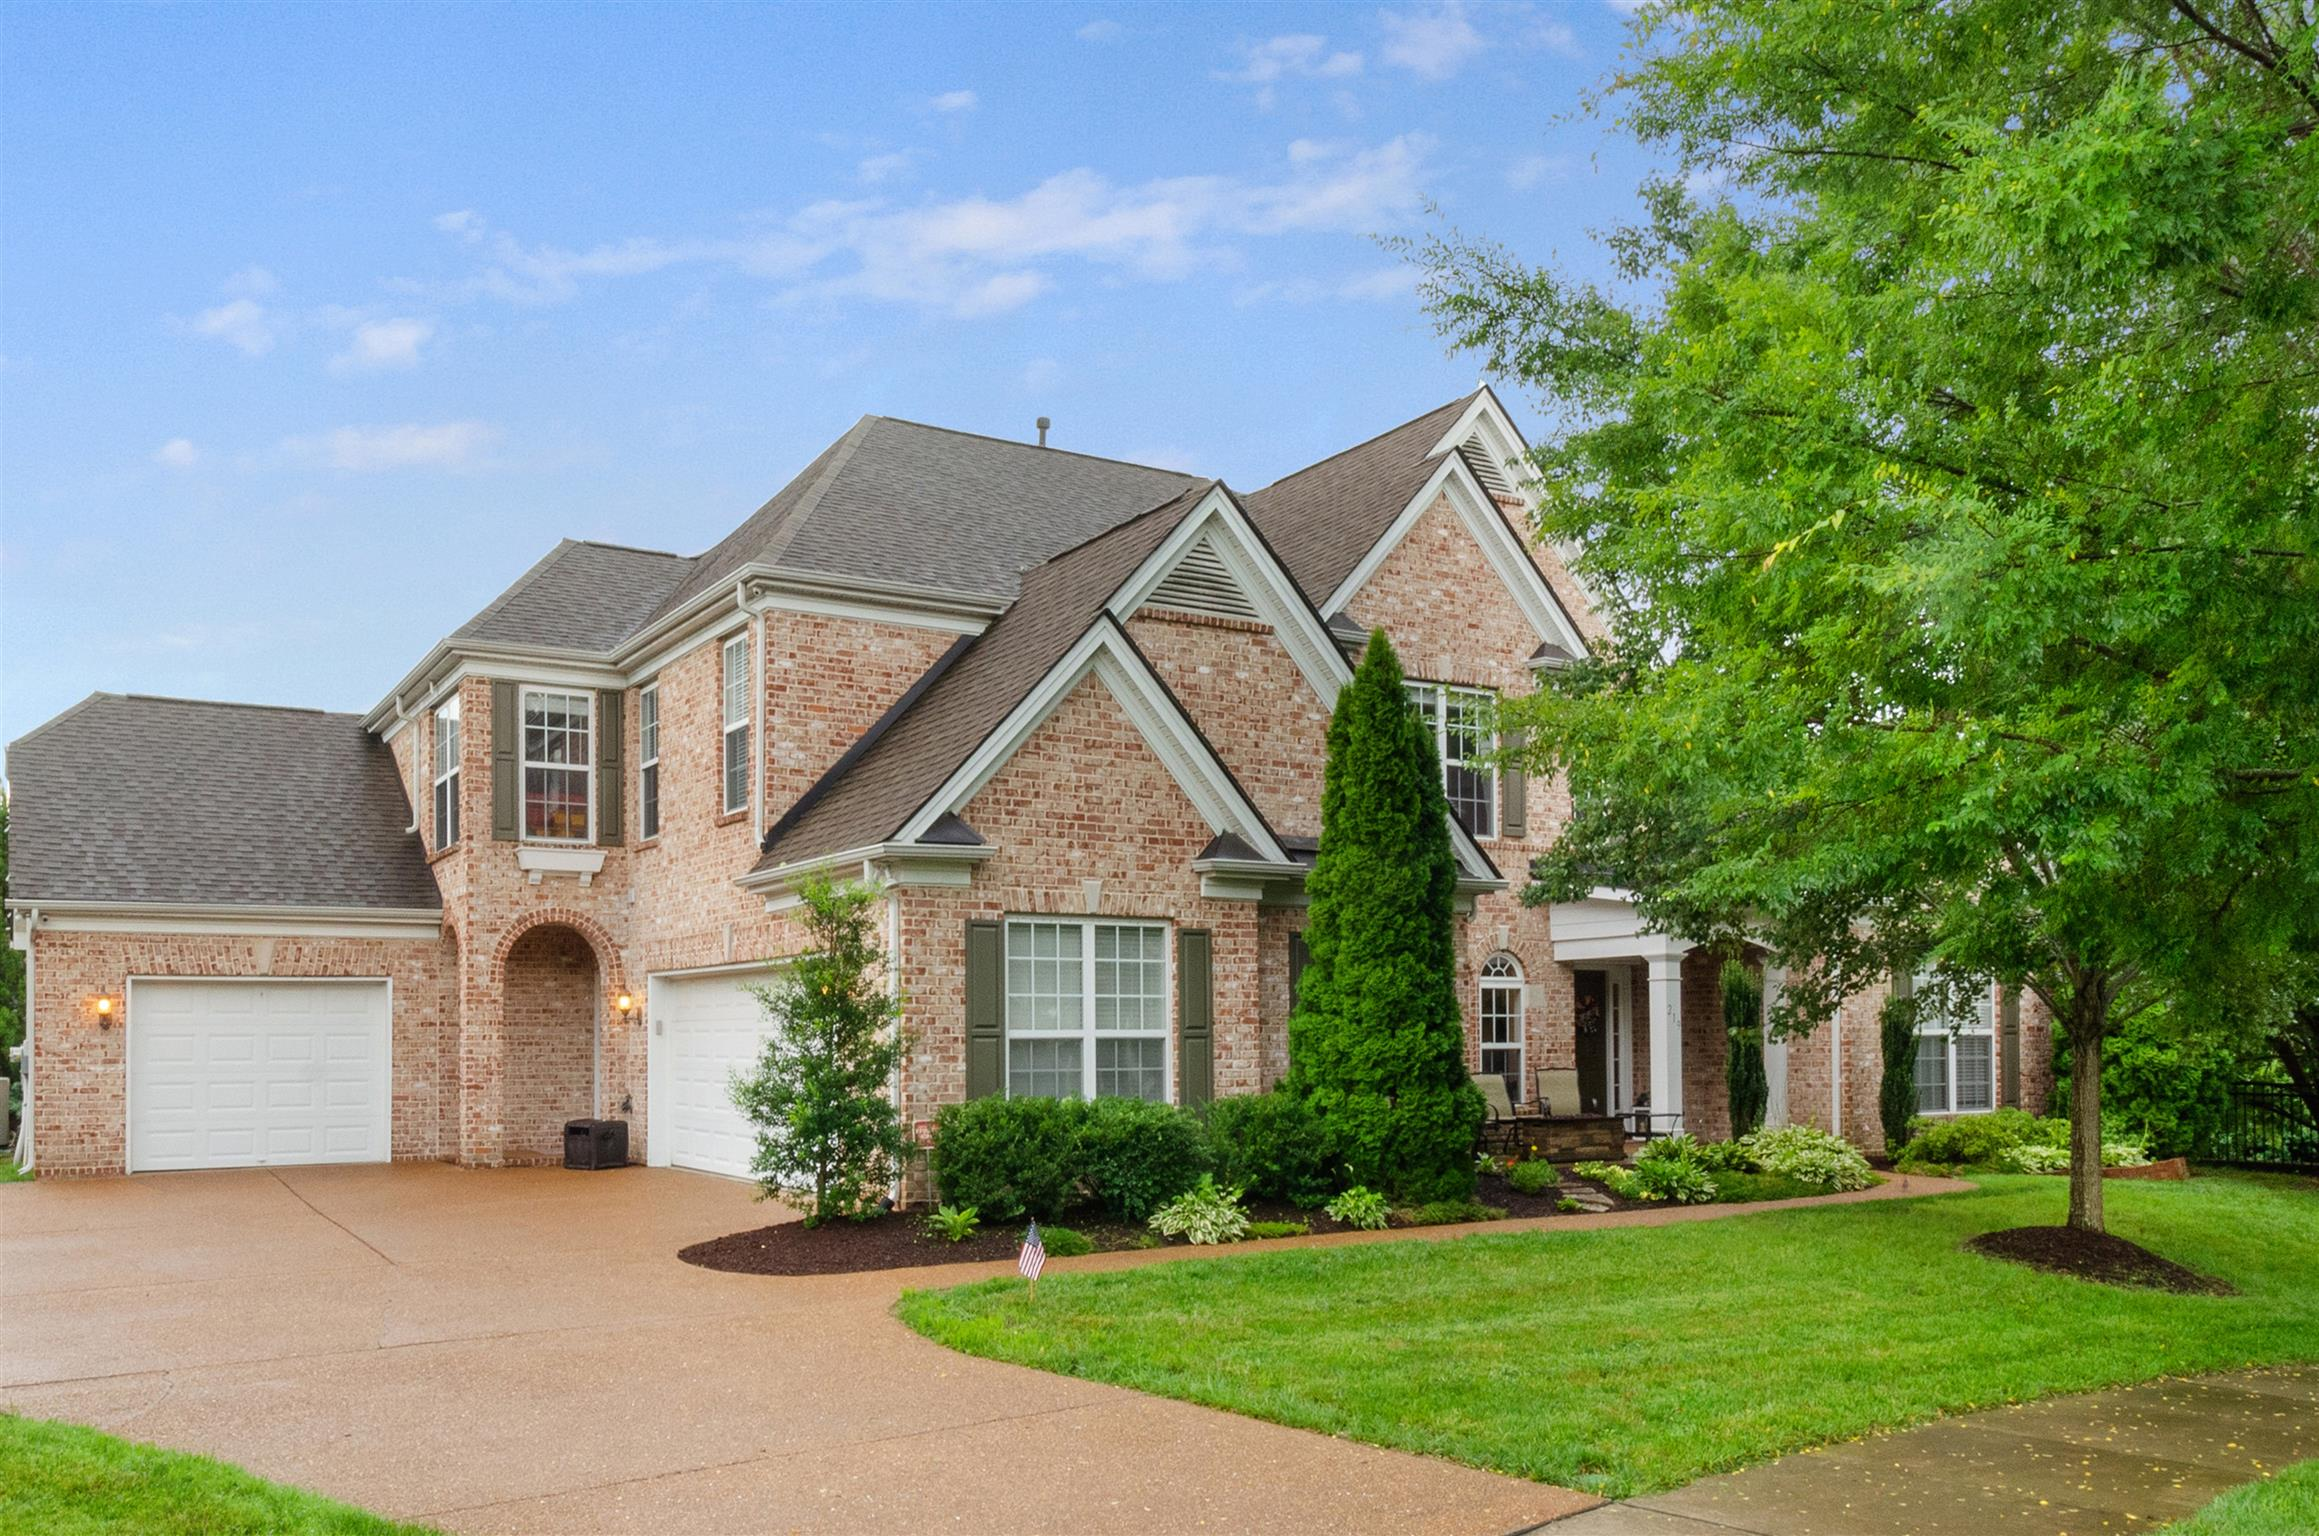 219 Conservatory Dr, Franklin, TN 37067 - Franklin, TN real estate listing